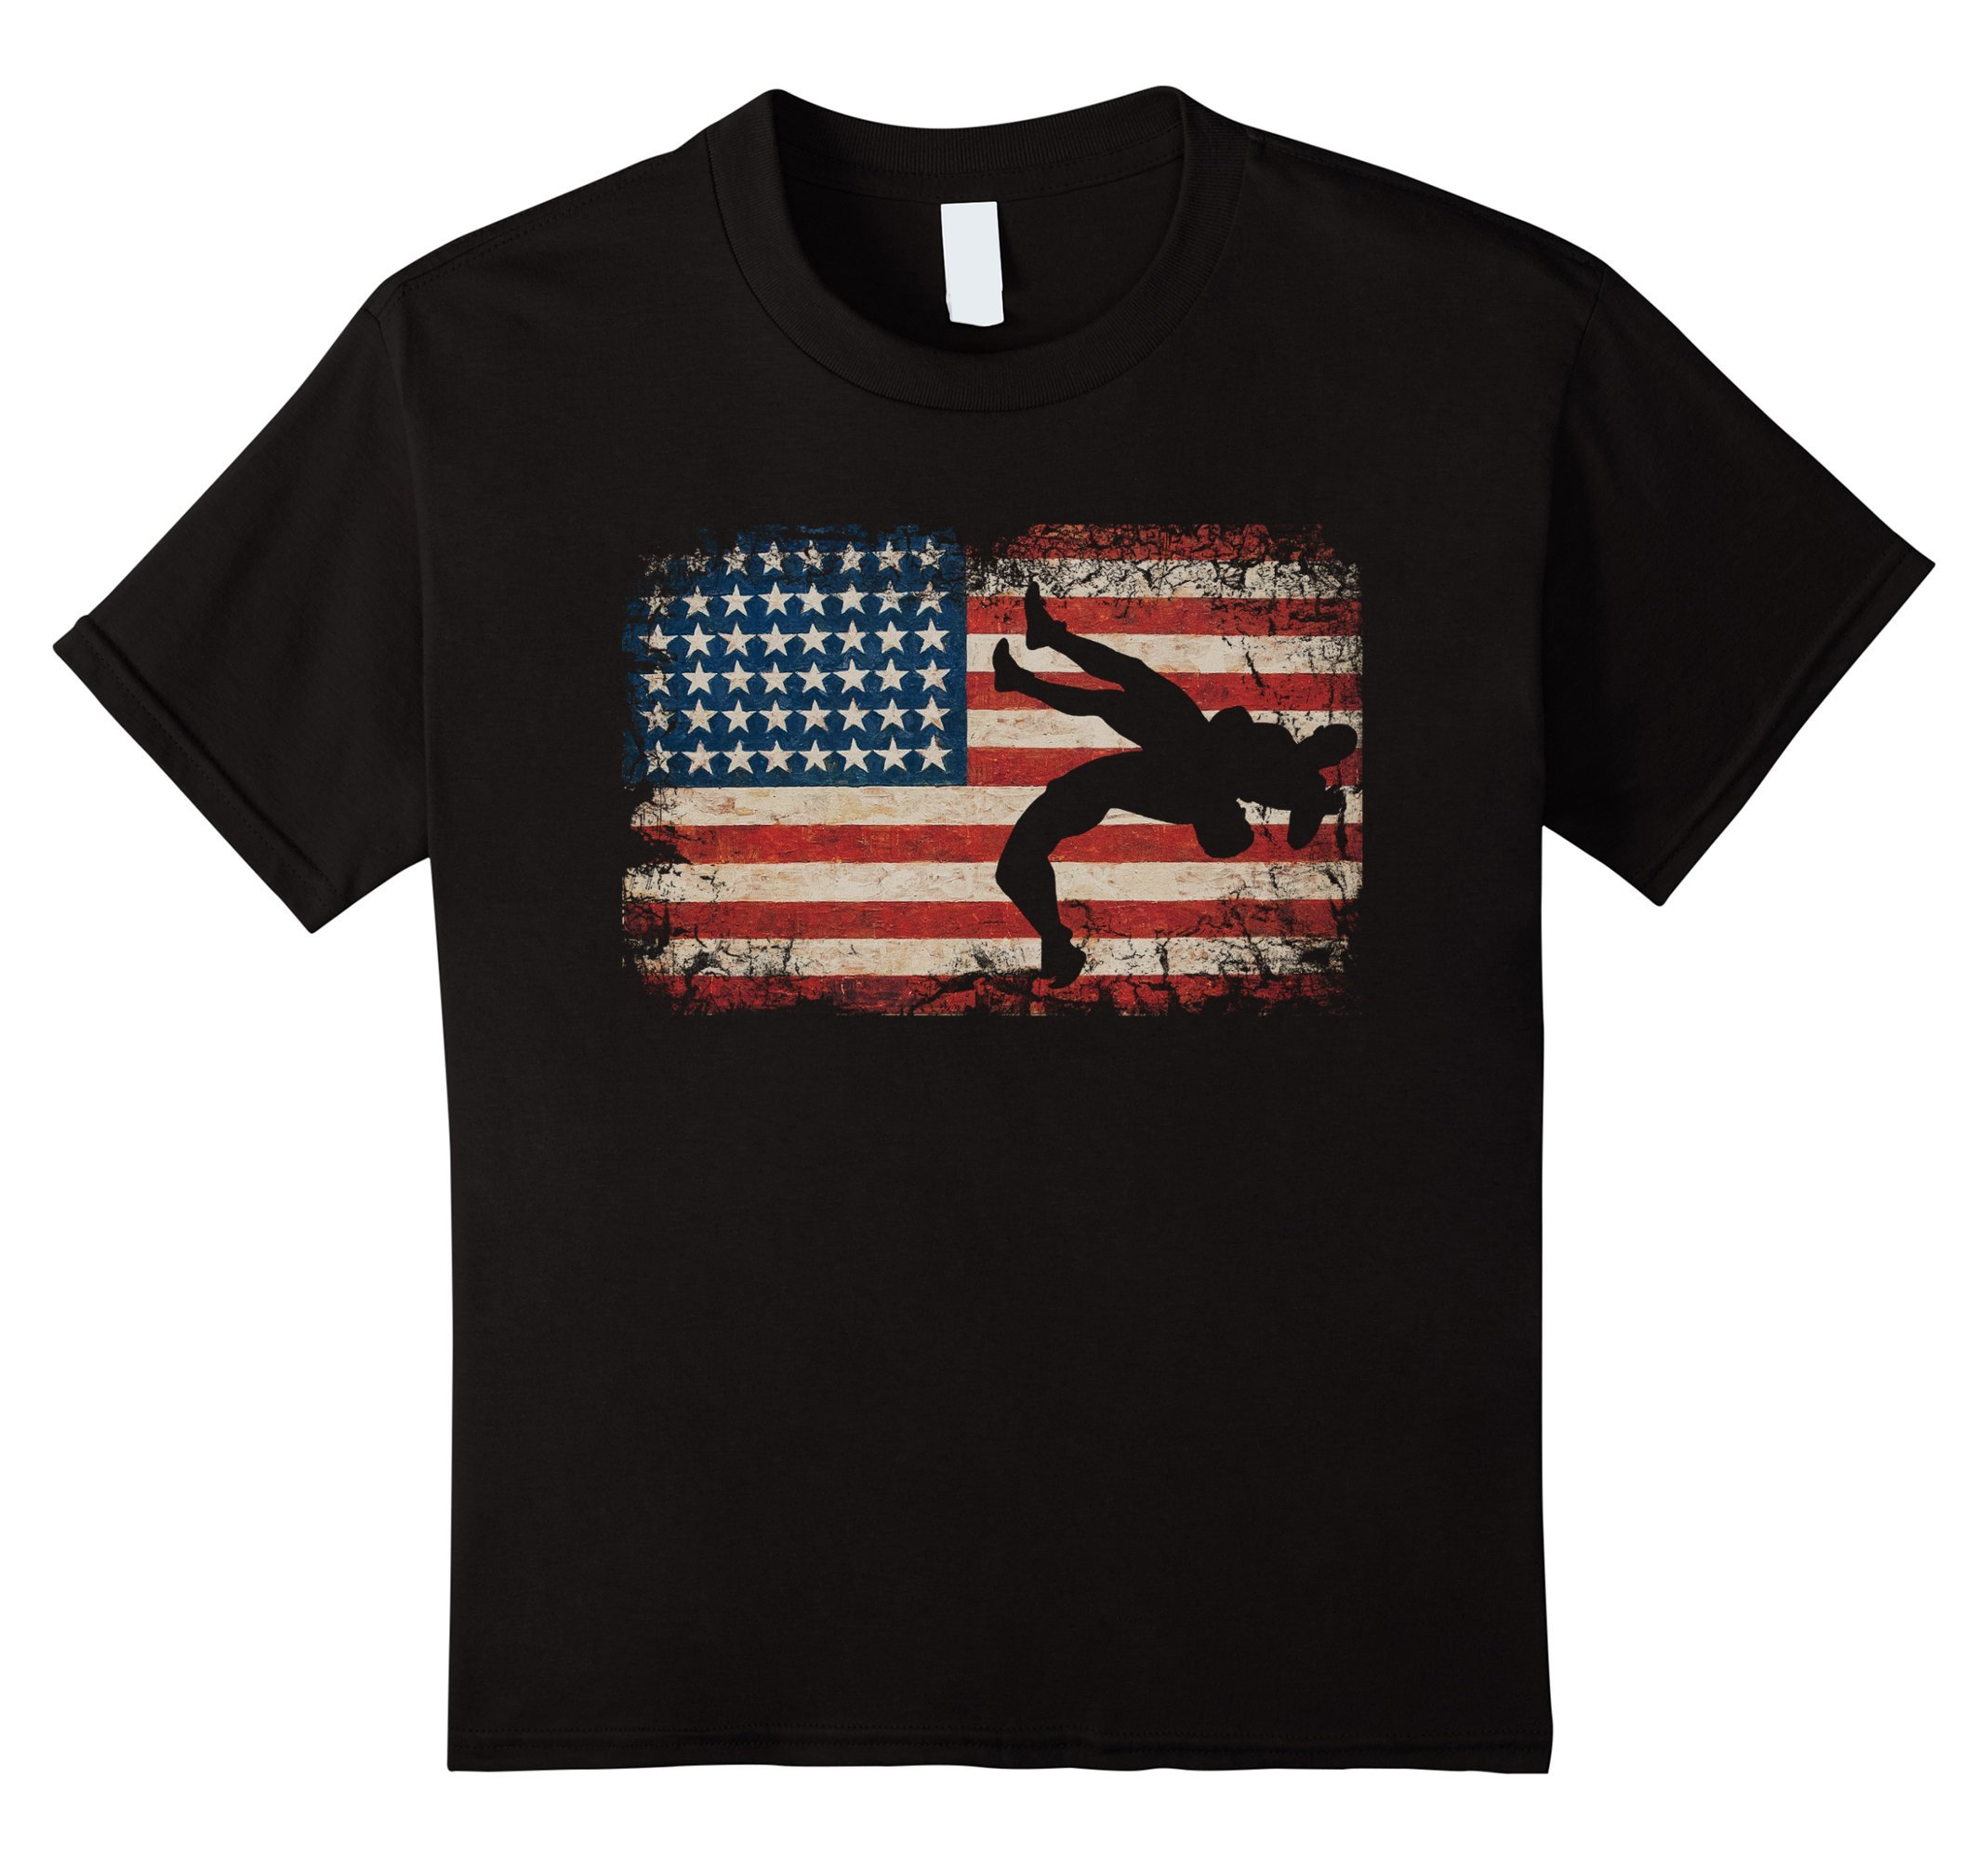 Kids Wrestling Shirt American Flag Gift for Wrestler 12 Black by Usa Wrestling shirt apparel